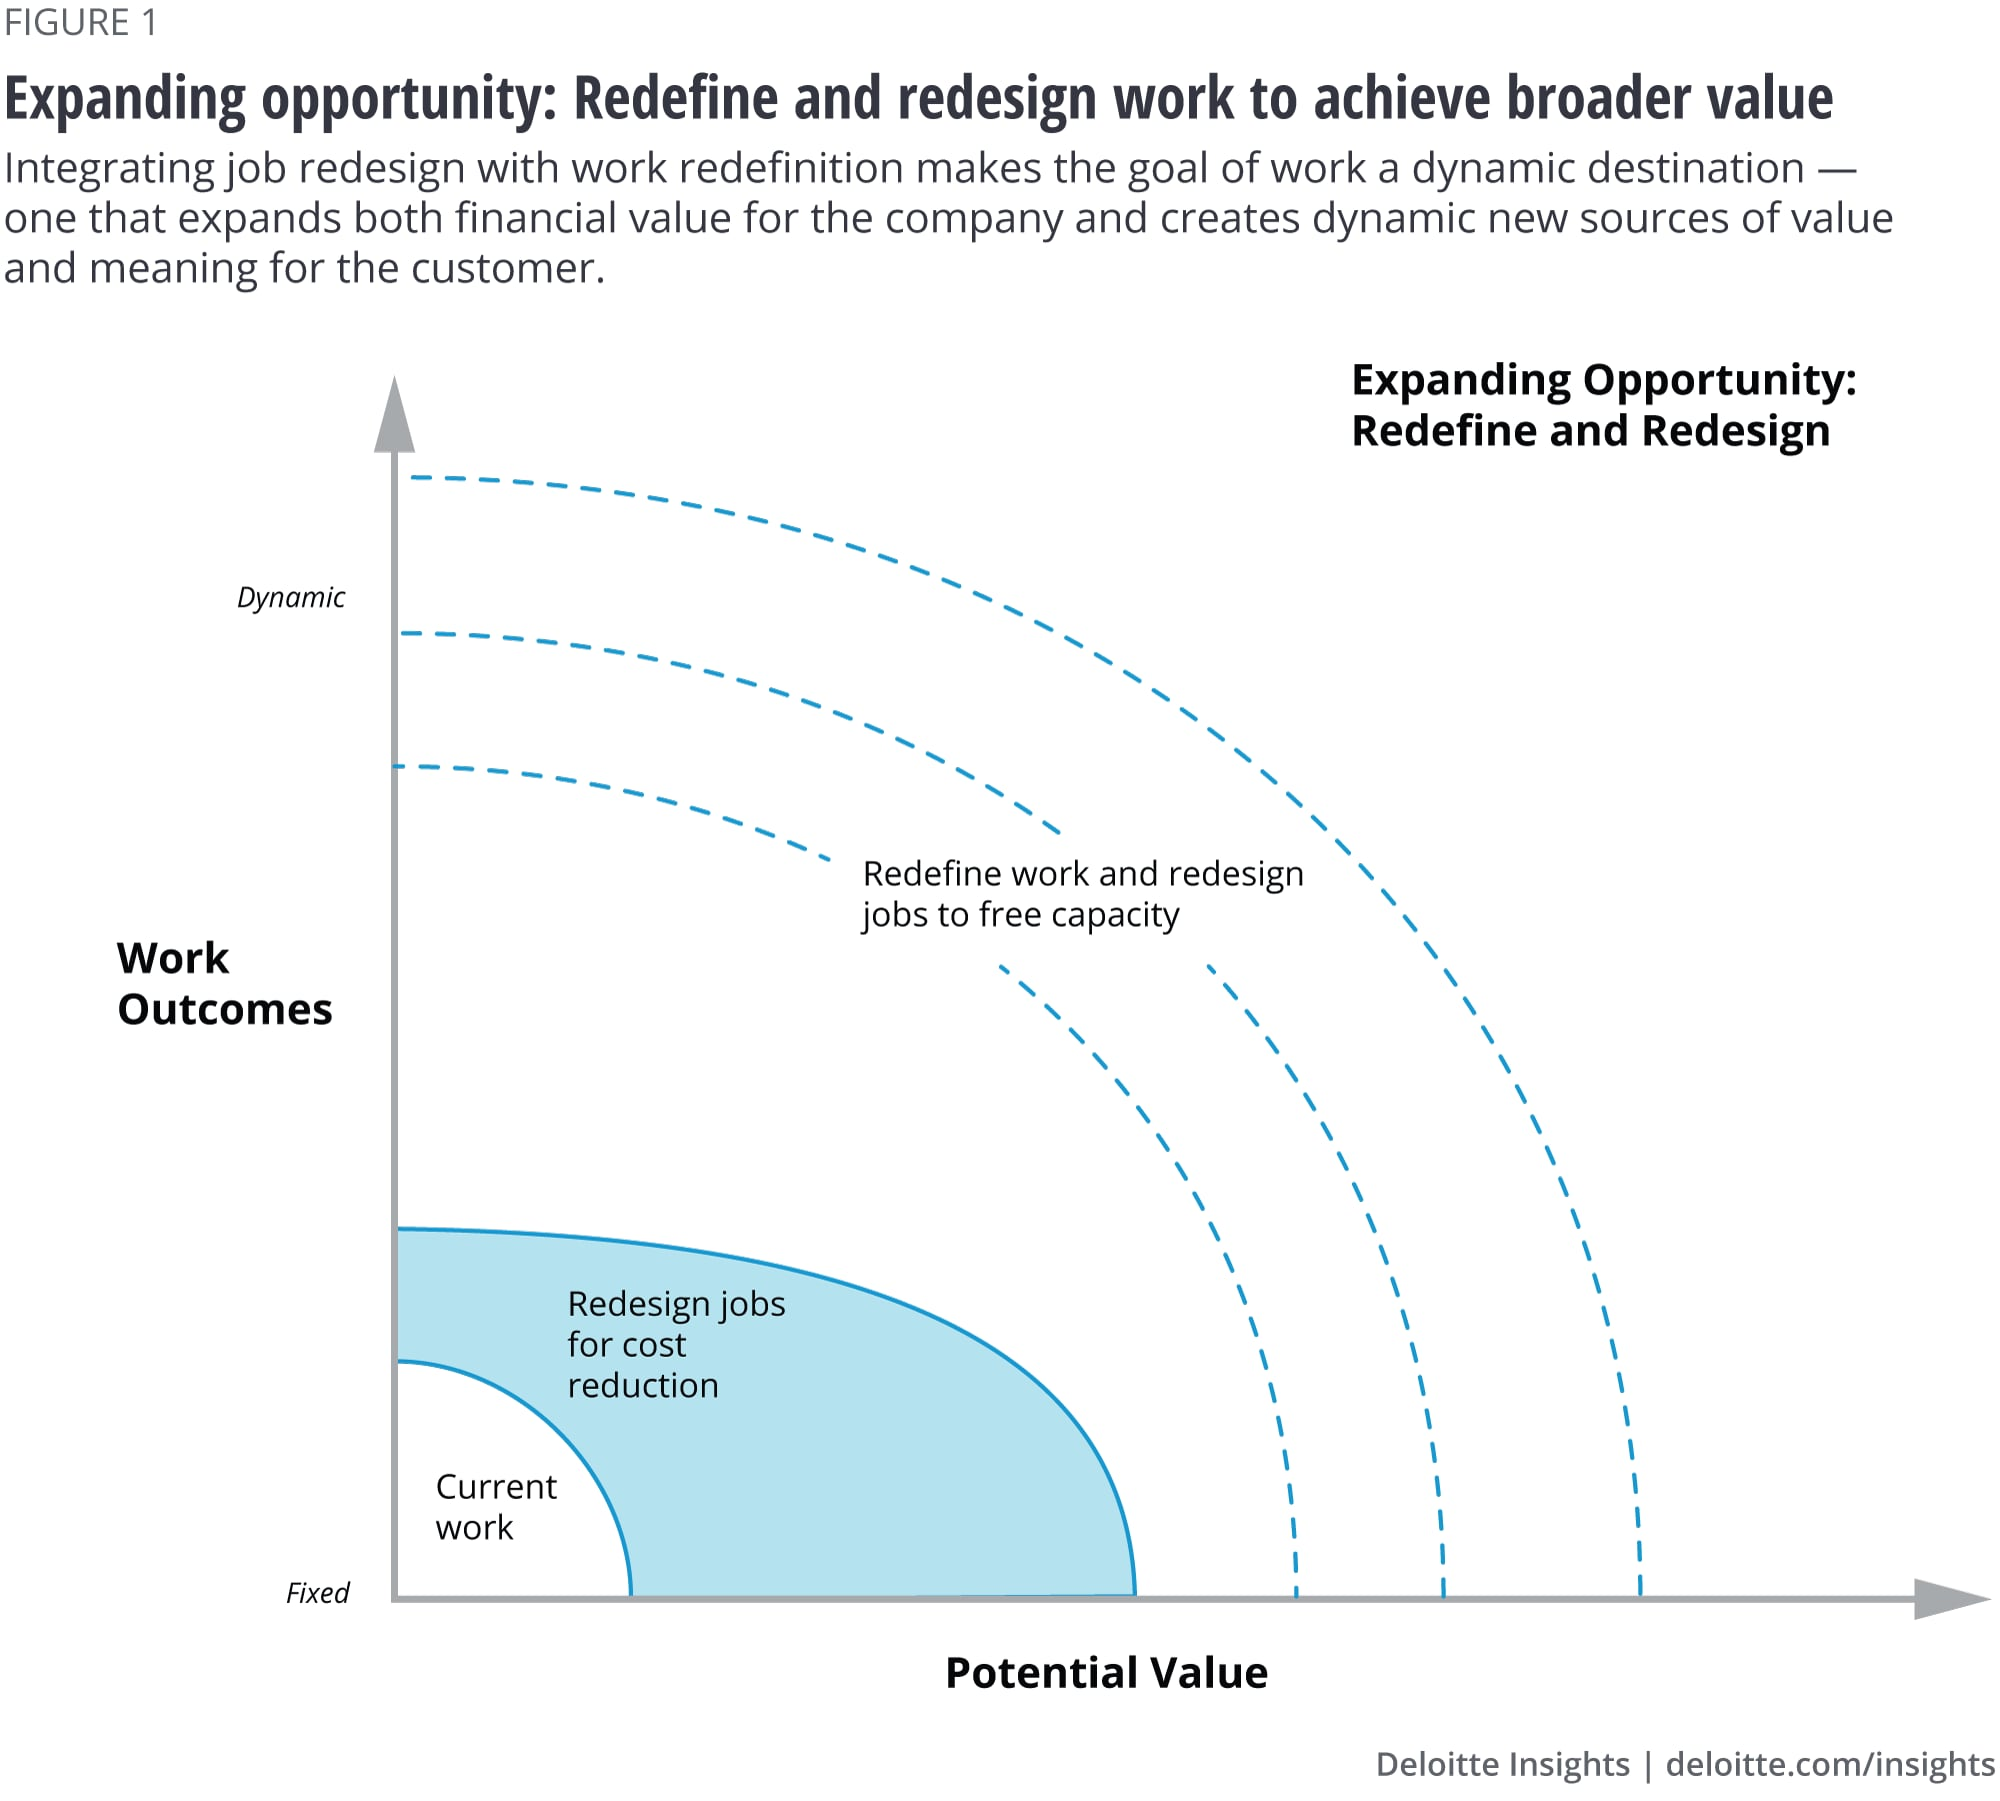 Redefine and redesign work to achieve broader value